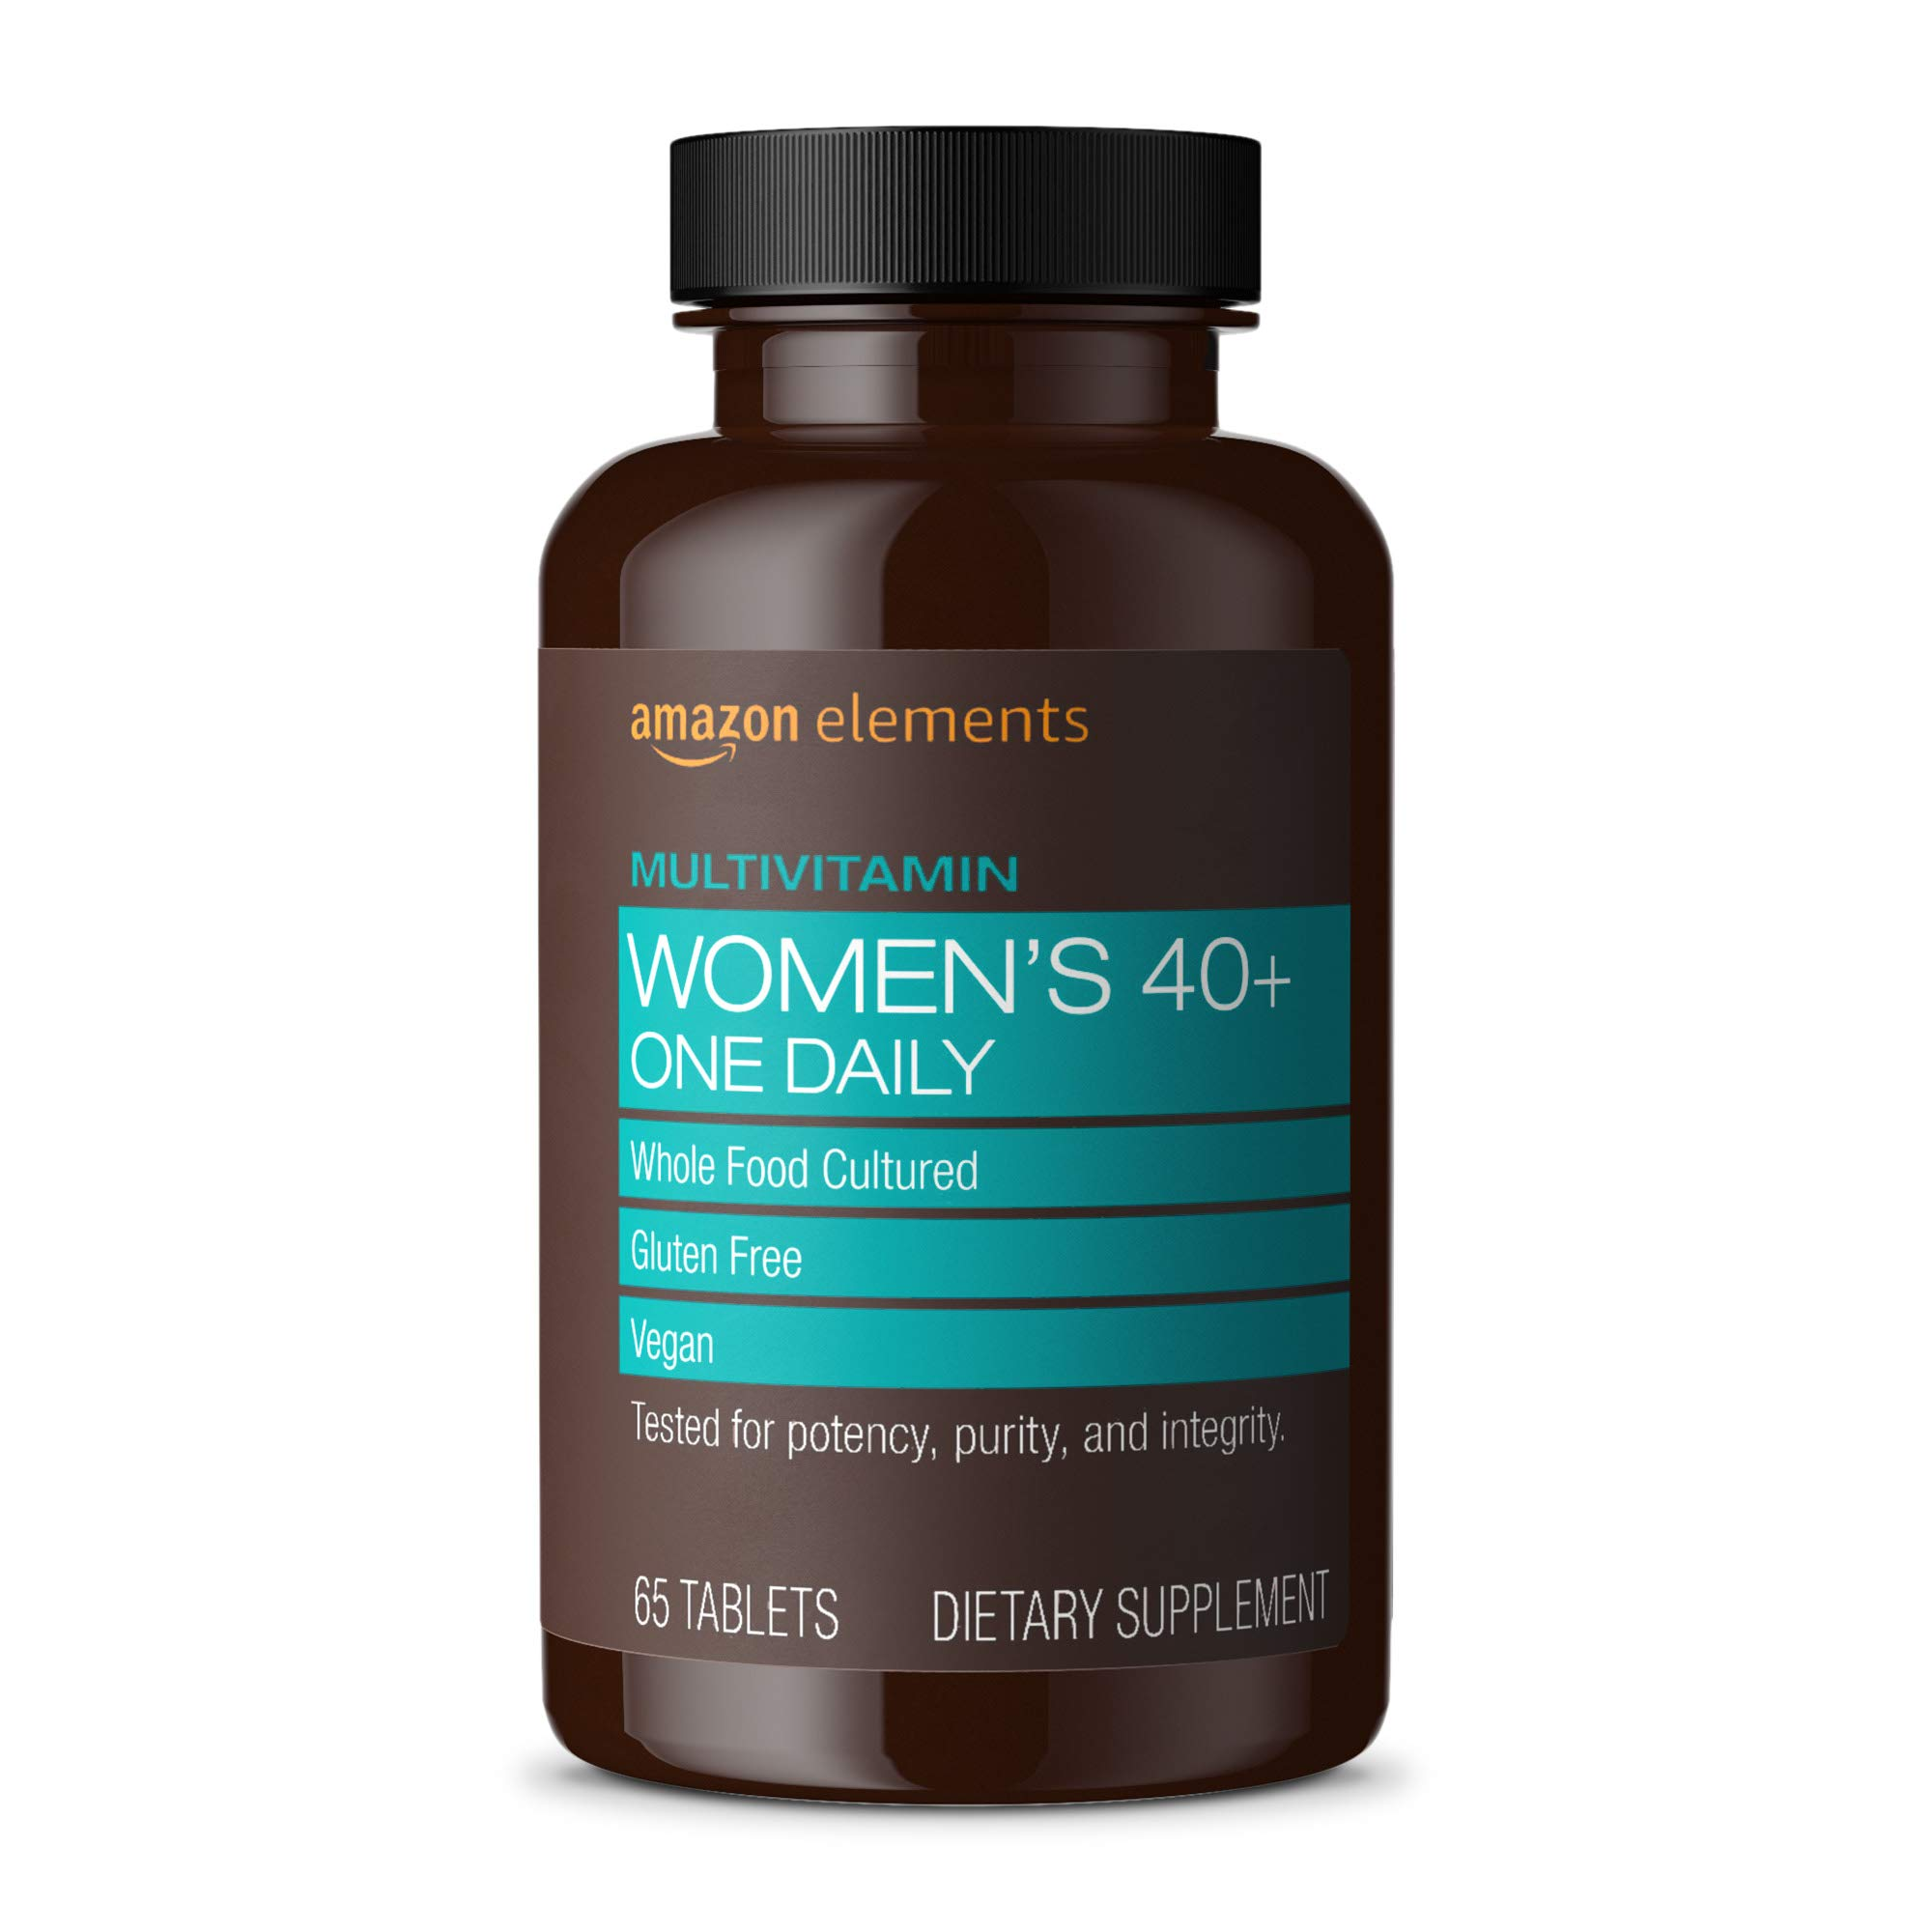 Amazon Elements Women's 40+ One Daily Multivitamin, 66% Whole Food Cultured, Vegan, 65 Tablets, 2 month supply (Packaging may vary)